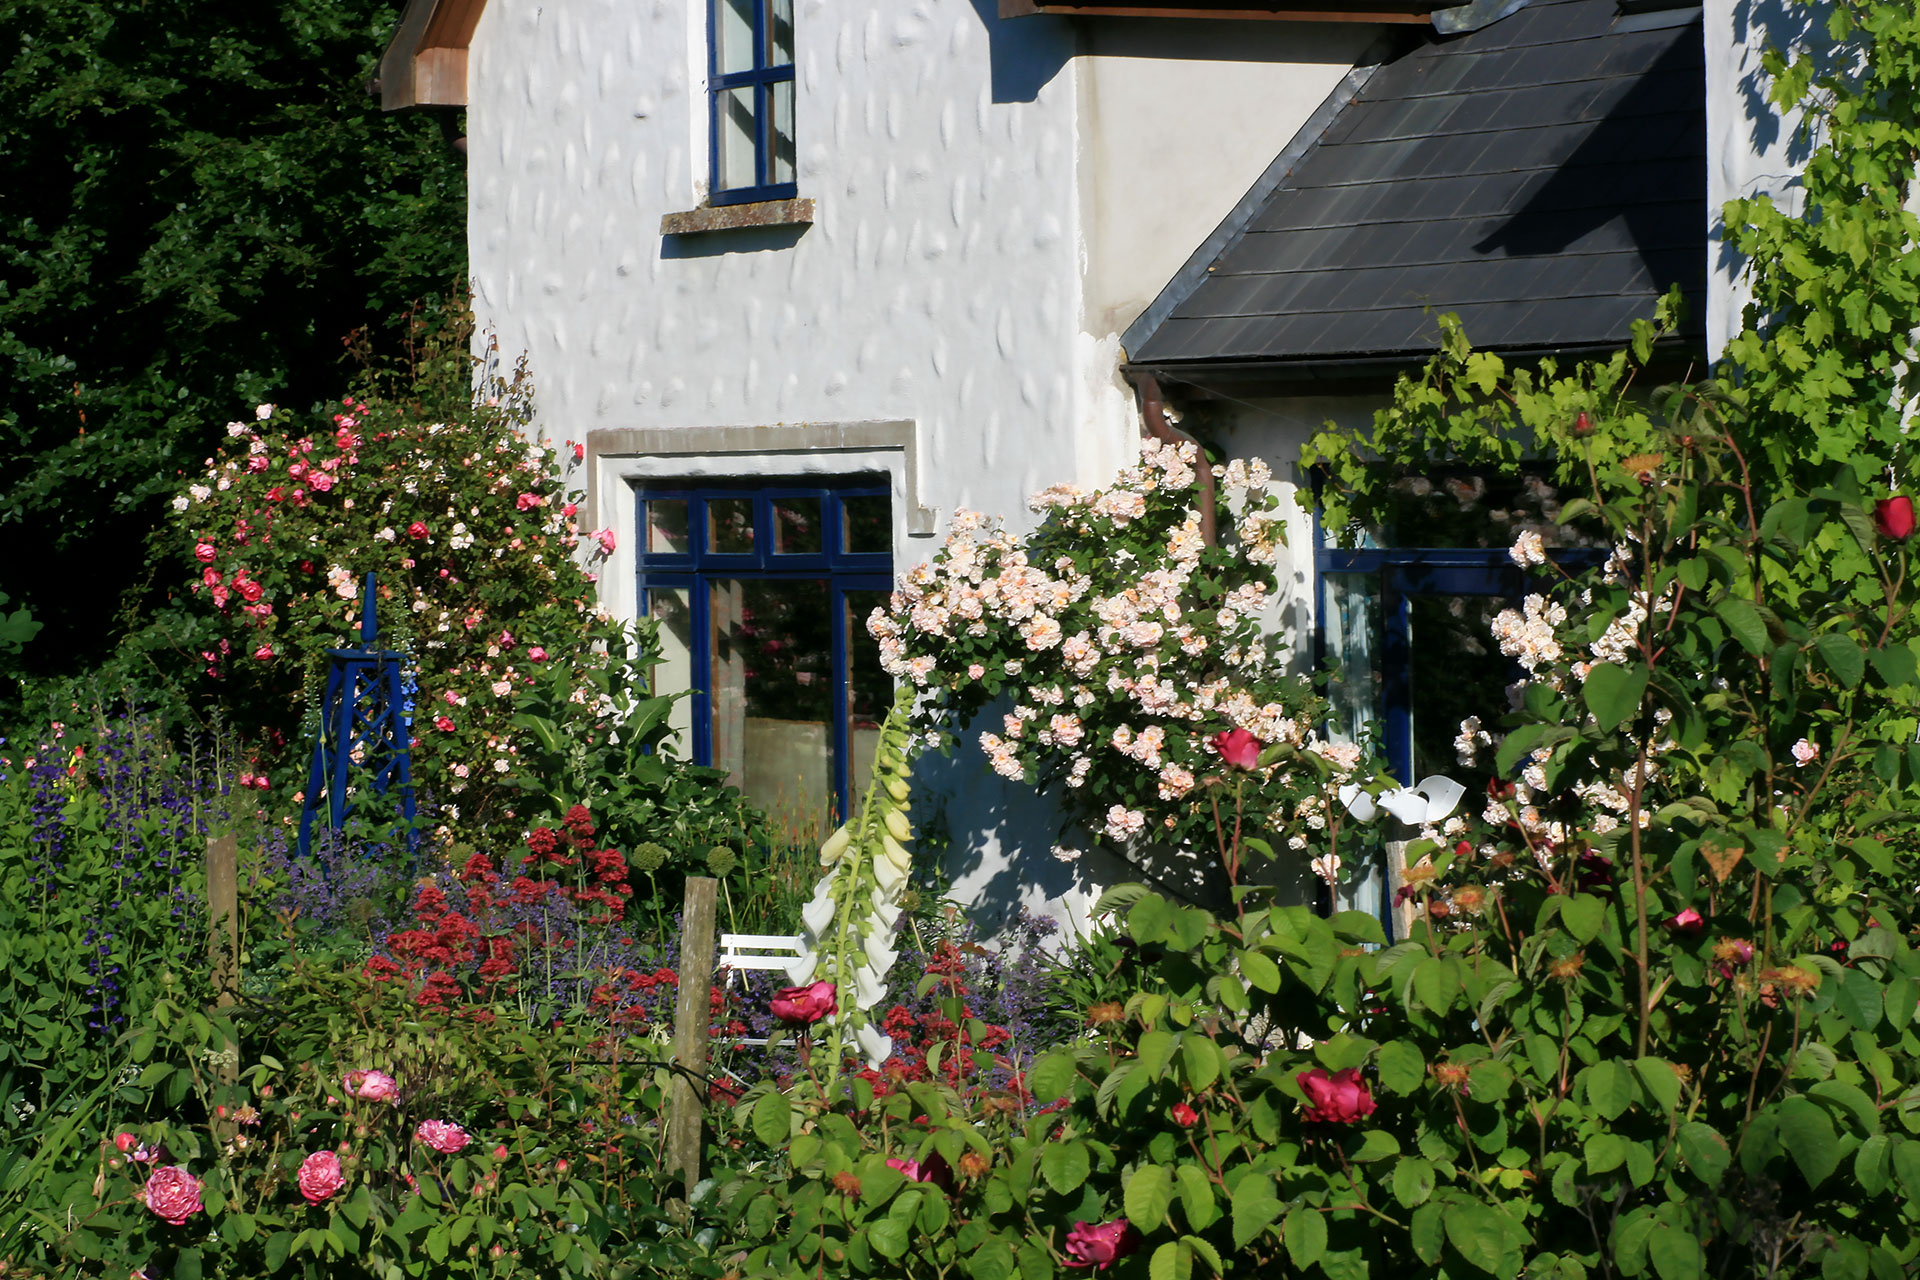 The garden in bloom, at Dunmore Country School